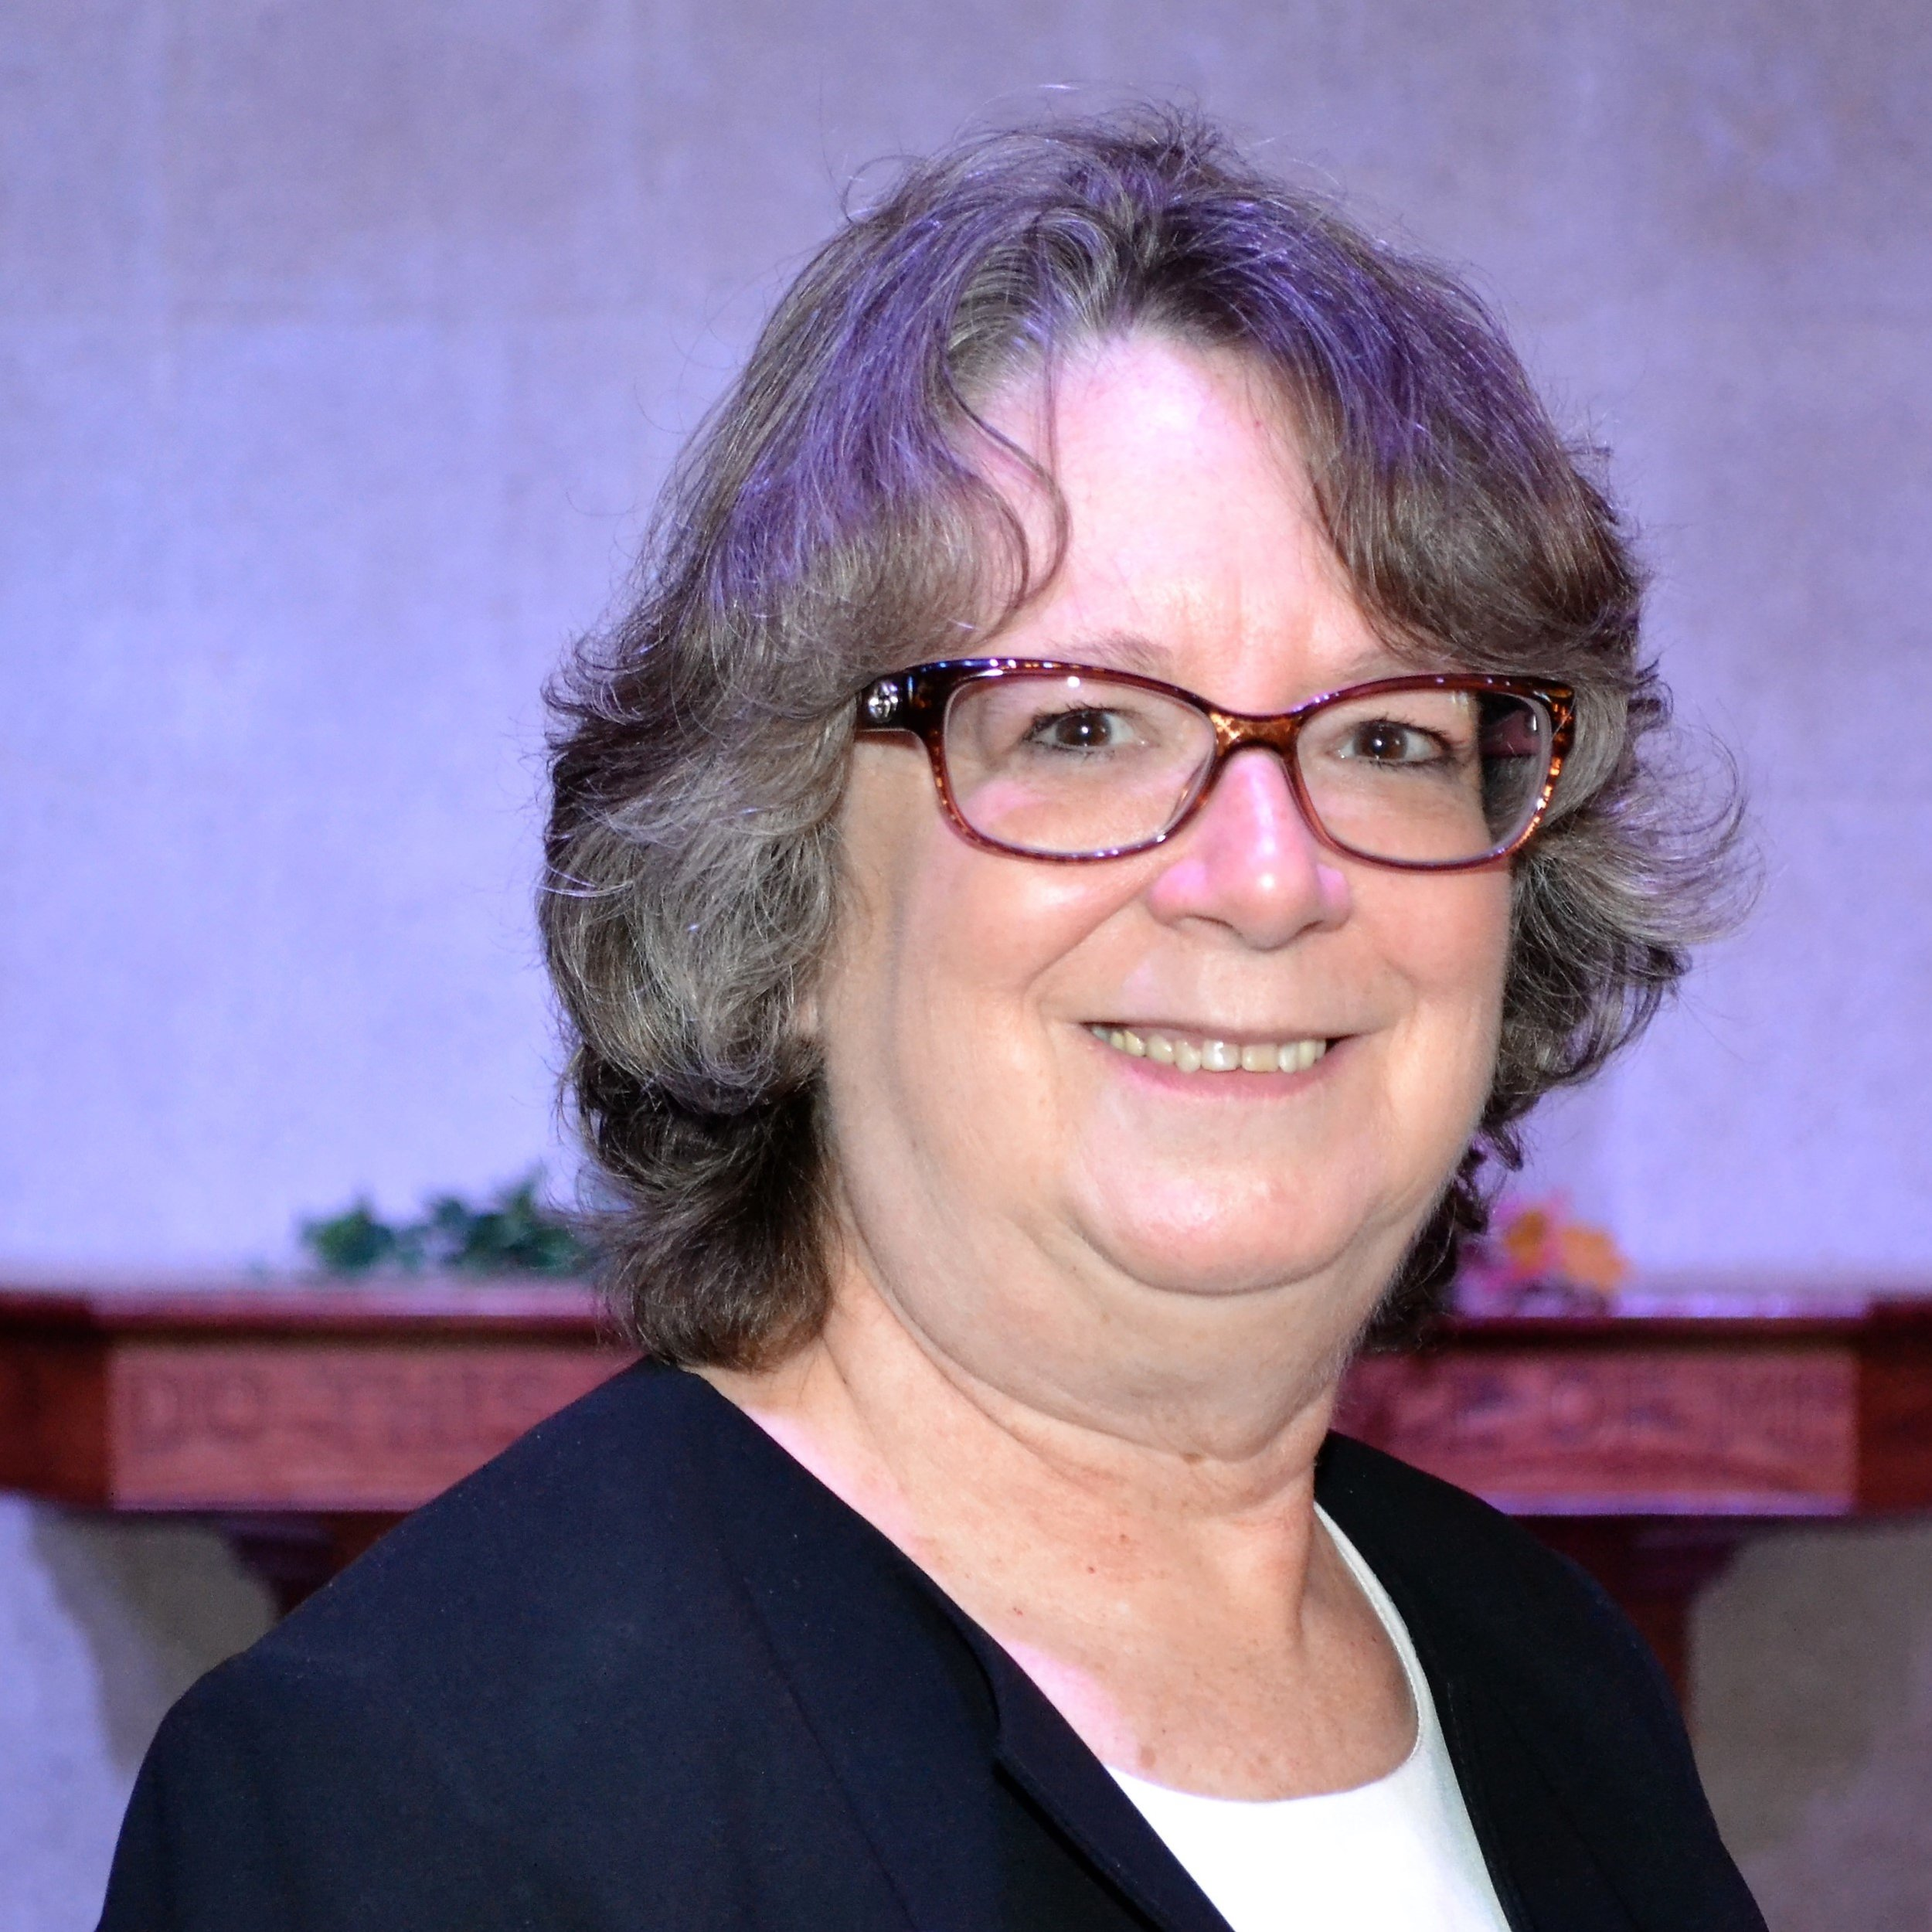 "JOYCE TYSON  (CHURCH CLERK)  Joyce, a 4th generation Seventh-Day Adventist, was born in Washington, PA. She is married to Enoch and has two grown sons. Joyce is an LPN and presently works at SpringHouse Estates caring for the elderly. Her passion for people has inspired her to serve as social committee leader at our church. She has since instituted an After Church Luncheon each Sabbath so visitors and members can fellowship together. Her favorite Bible verse is Isaiah 41:11 - ""Fear not, for I am with you; Be not dismayed, for I am your God. I will strengthen you, Yes, I will help you. I will uphold you with my righteous right hand"".   email joyce"